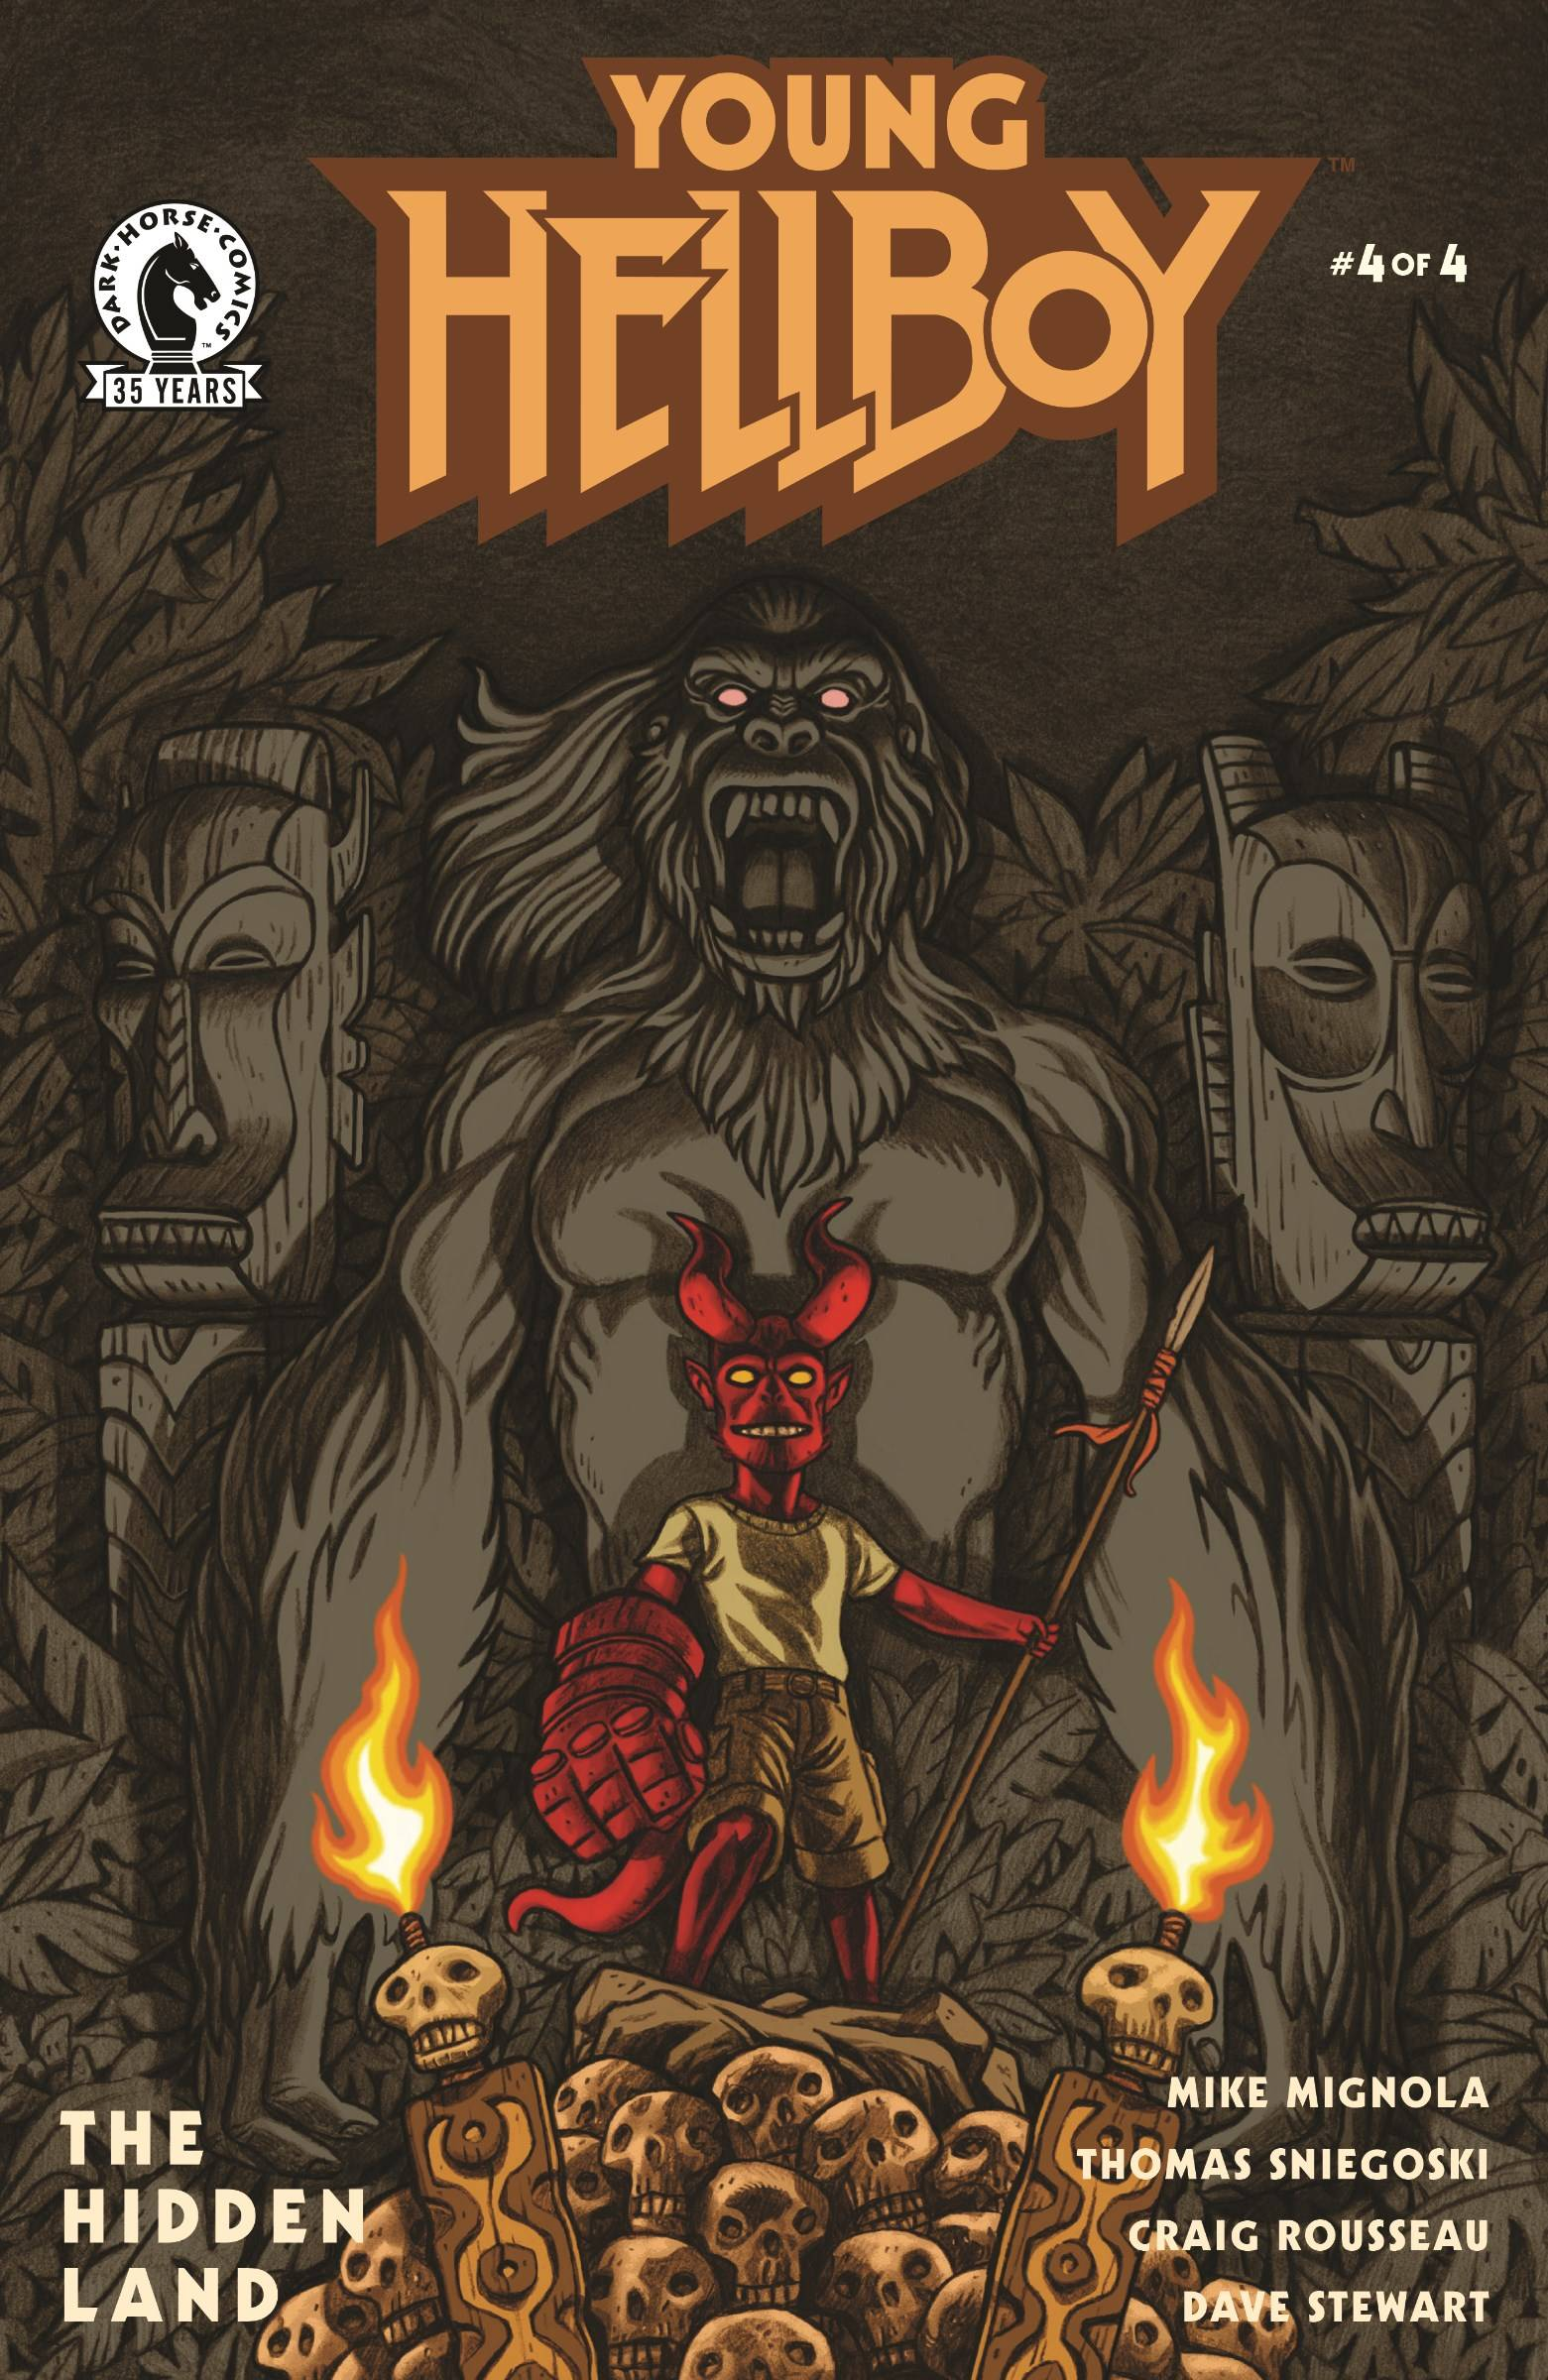 YOUNG HELLBOY THE HIDDEN LAND #4 (OF 4) CVR B CARPENTER